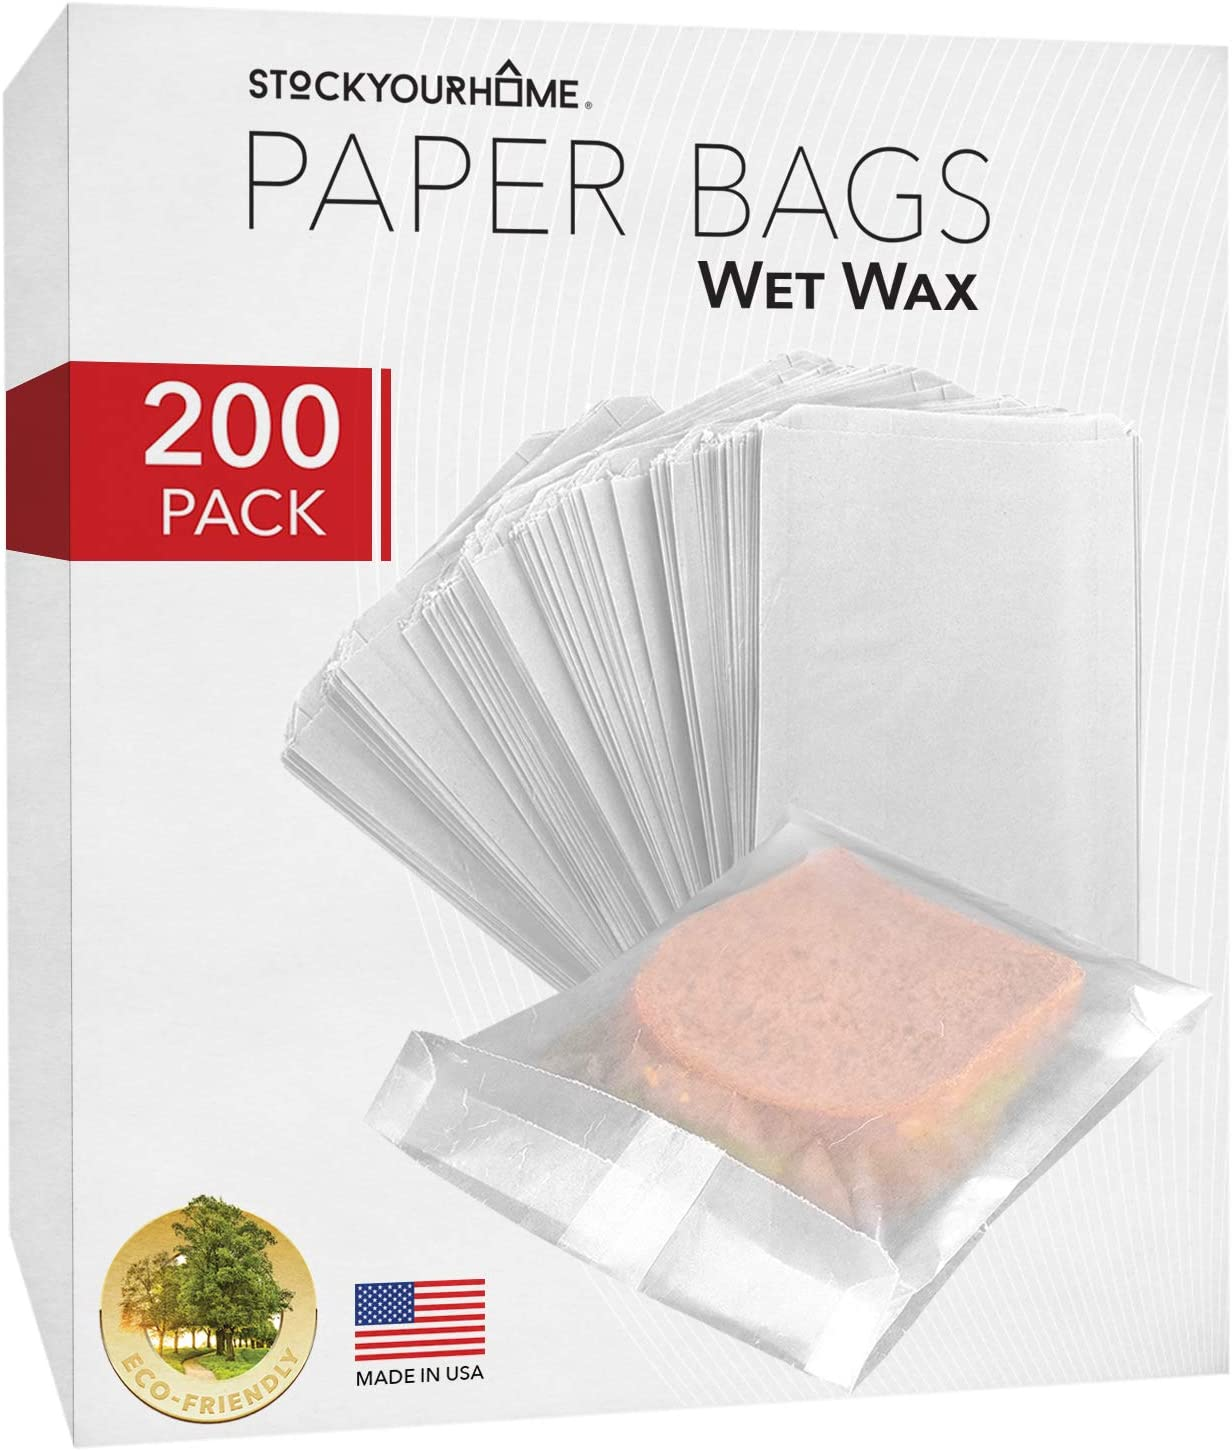 "Paper Sandwich Bags Bulk Wax Paper (200 Pack) 7"" x 6"" x 1"" Wet Wax Paper Bags - Food Grade Grease Resistant Wax Bags - White Glassine Bags - Paper Bags for Bakery Cookies, Candy, Snacks, French Fries"